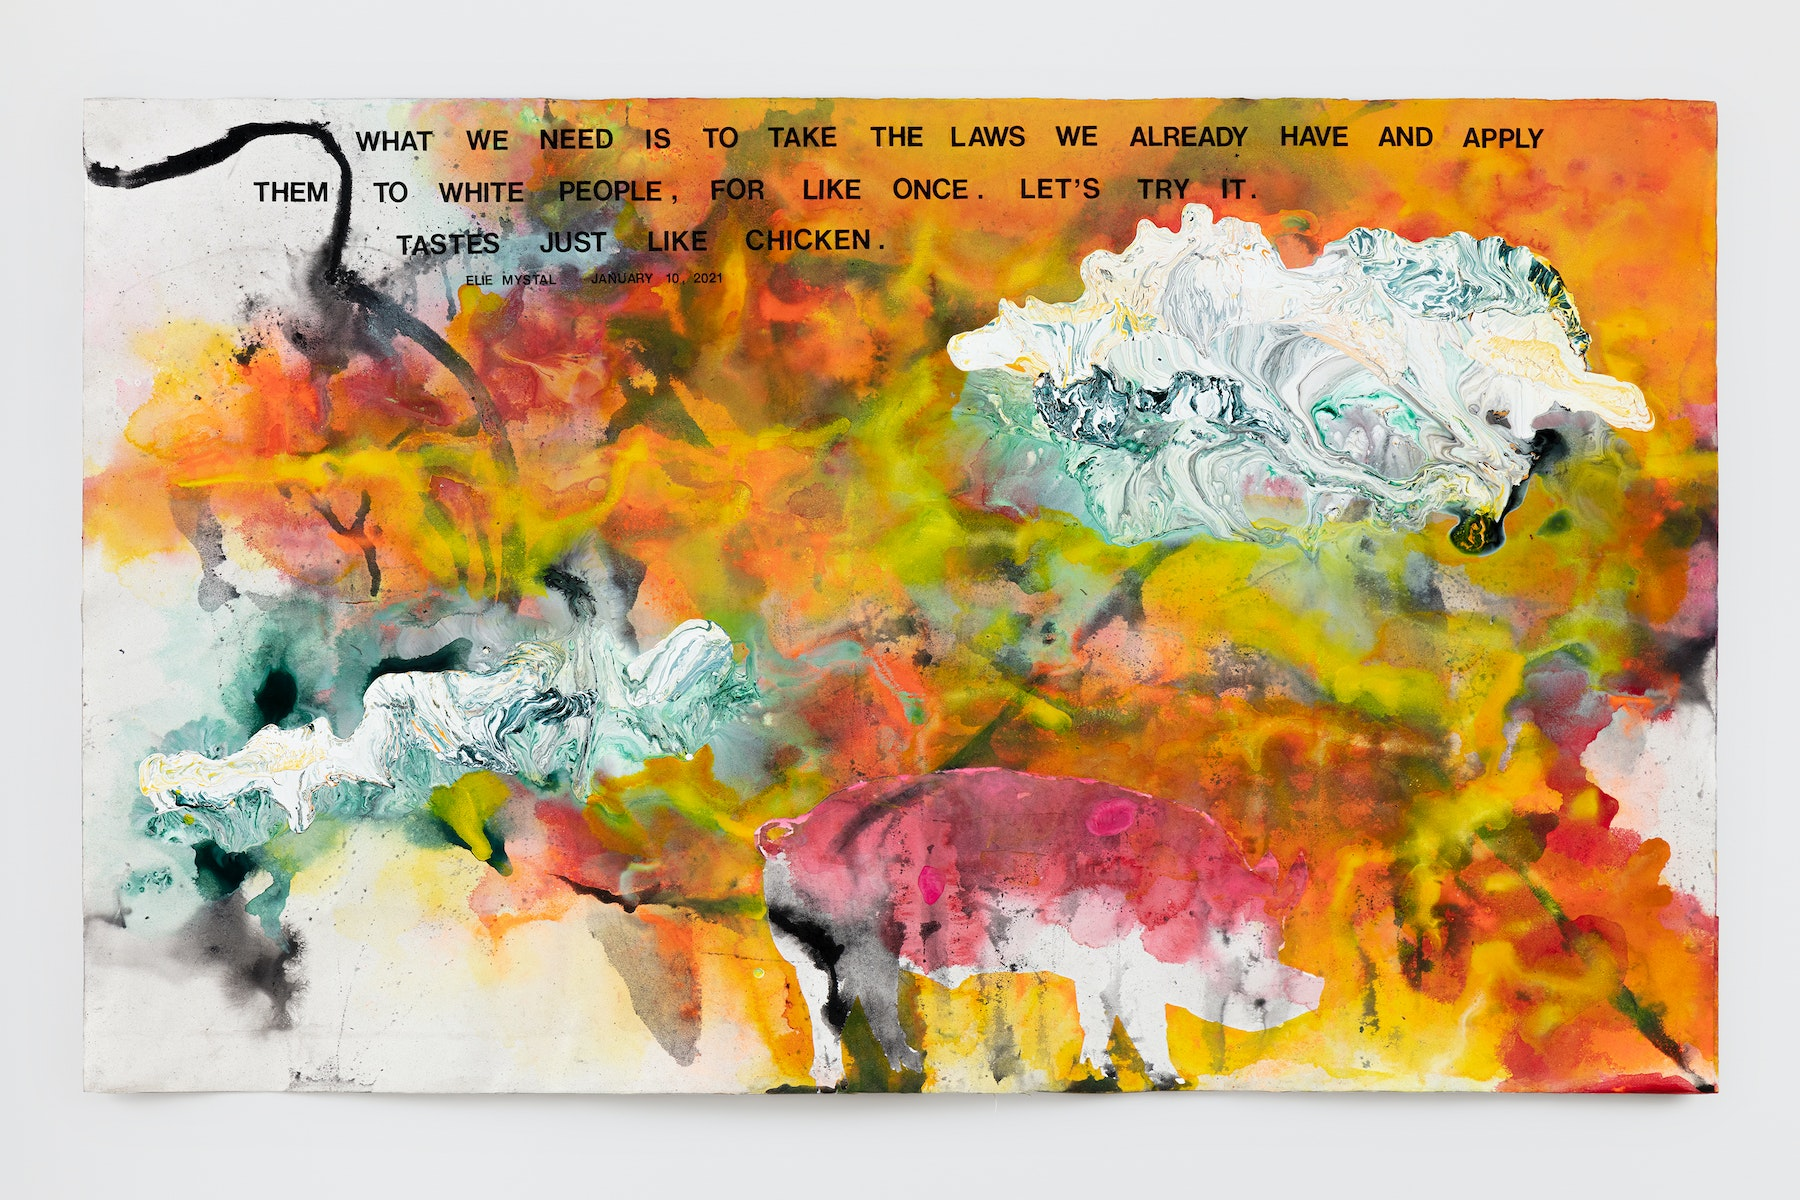 """Rodney McMillian """"Elie Mystal, January 10, 2021,"""" 2021 Ink, acrylic, latex, paper, on paper mounted on canvas 51"""" x 83 ¹⁄₂"""" [HxW] (129.54 x 212.09 cm) Inventory #MCR418 Courtesy of the artist and Vielmetter Los Angeles Photo credit: Evan Bedford"""